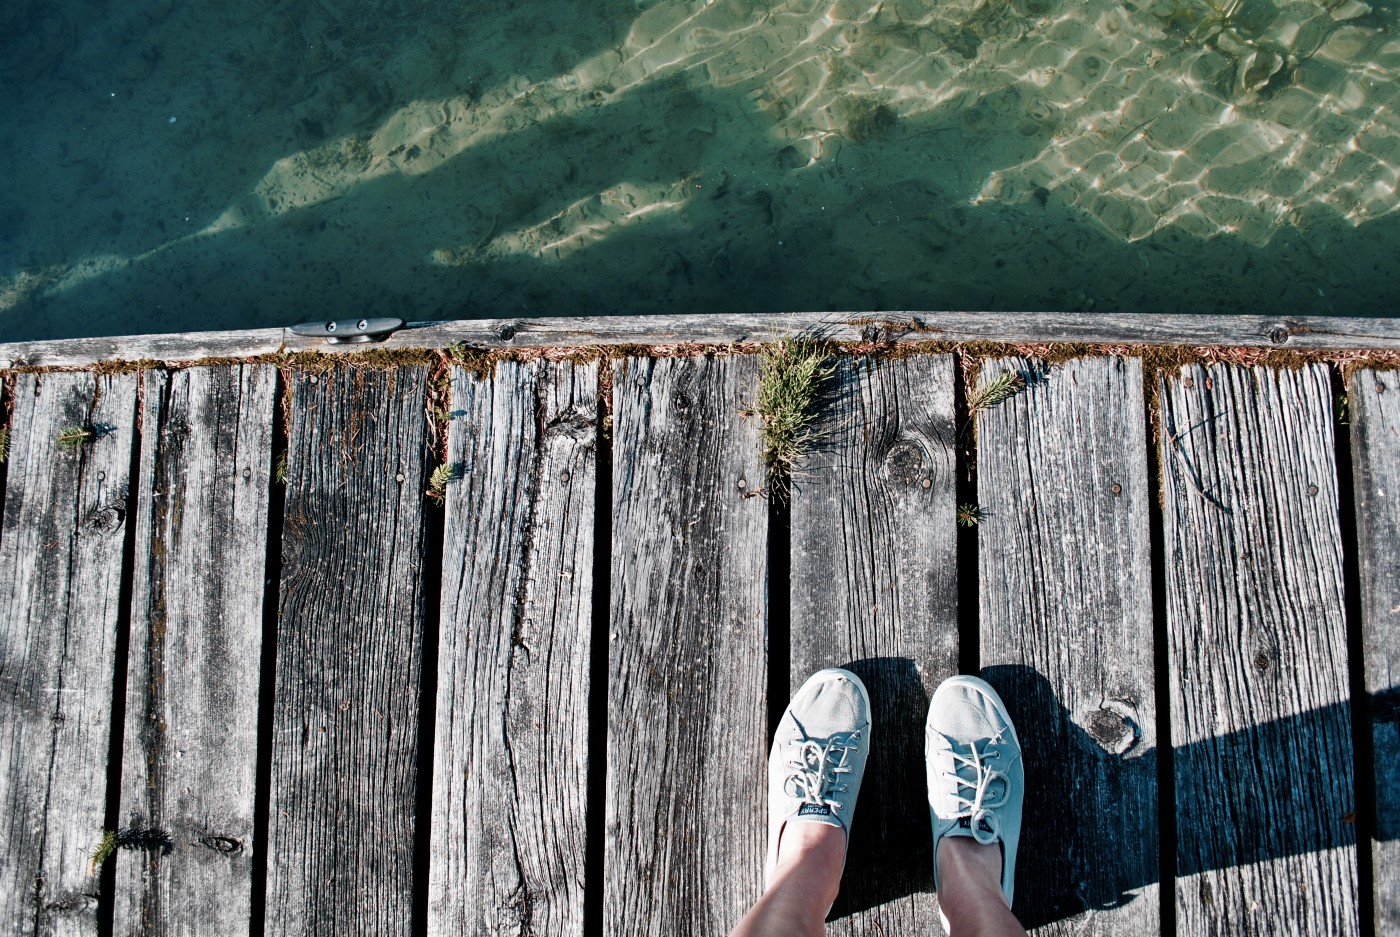 sneakered feet on a faded dock above water